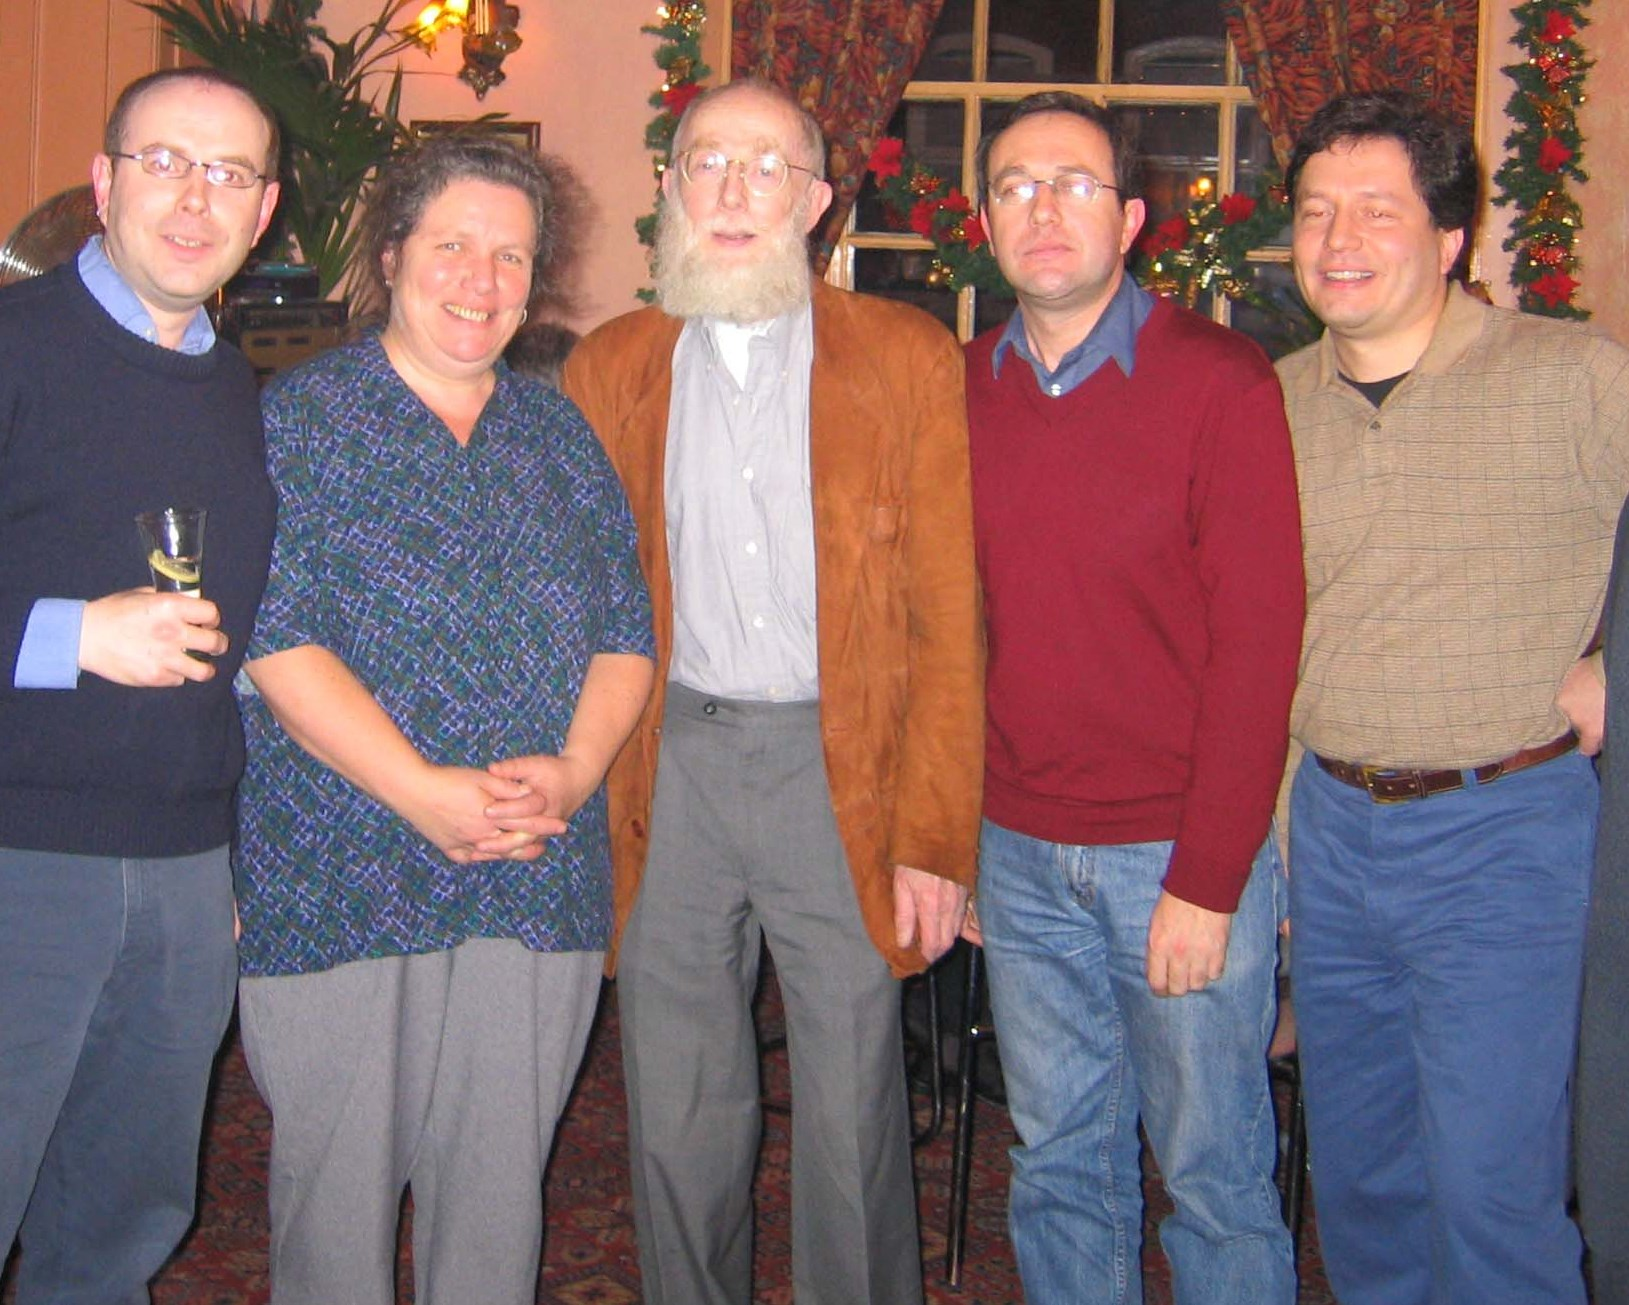 From left Adam, Abi, Felix, Simon and Daniel. 2005